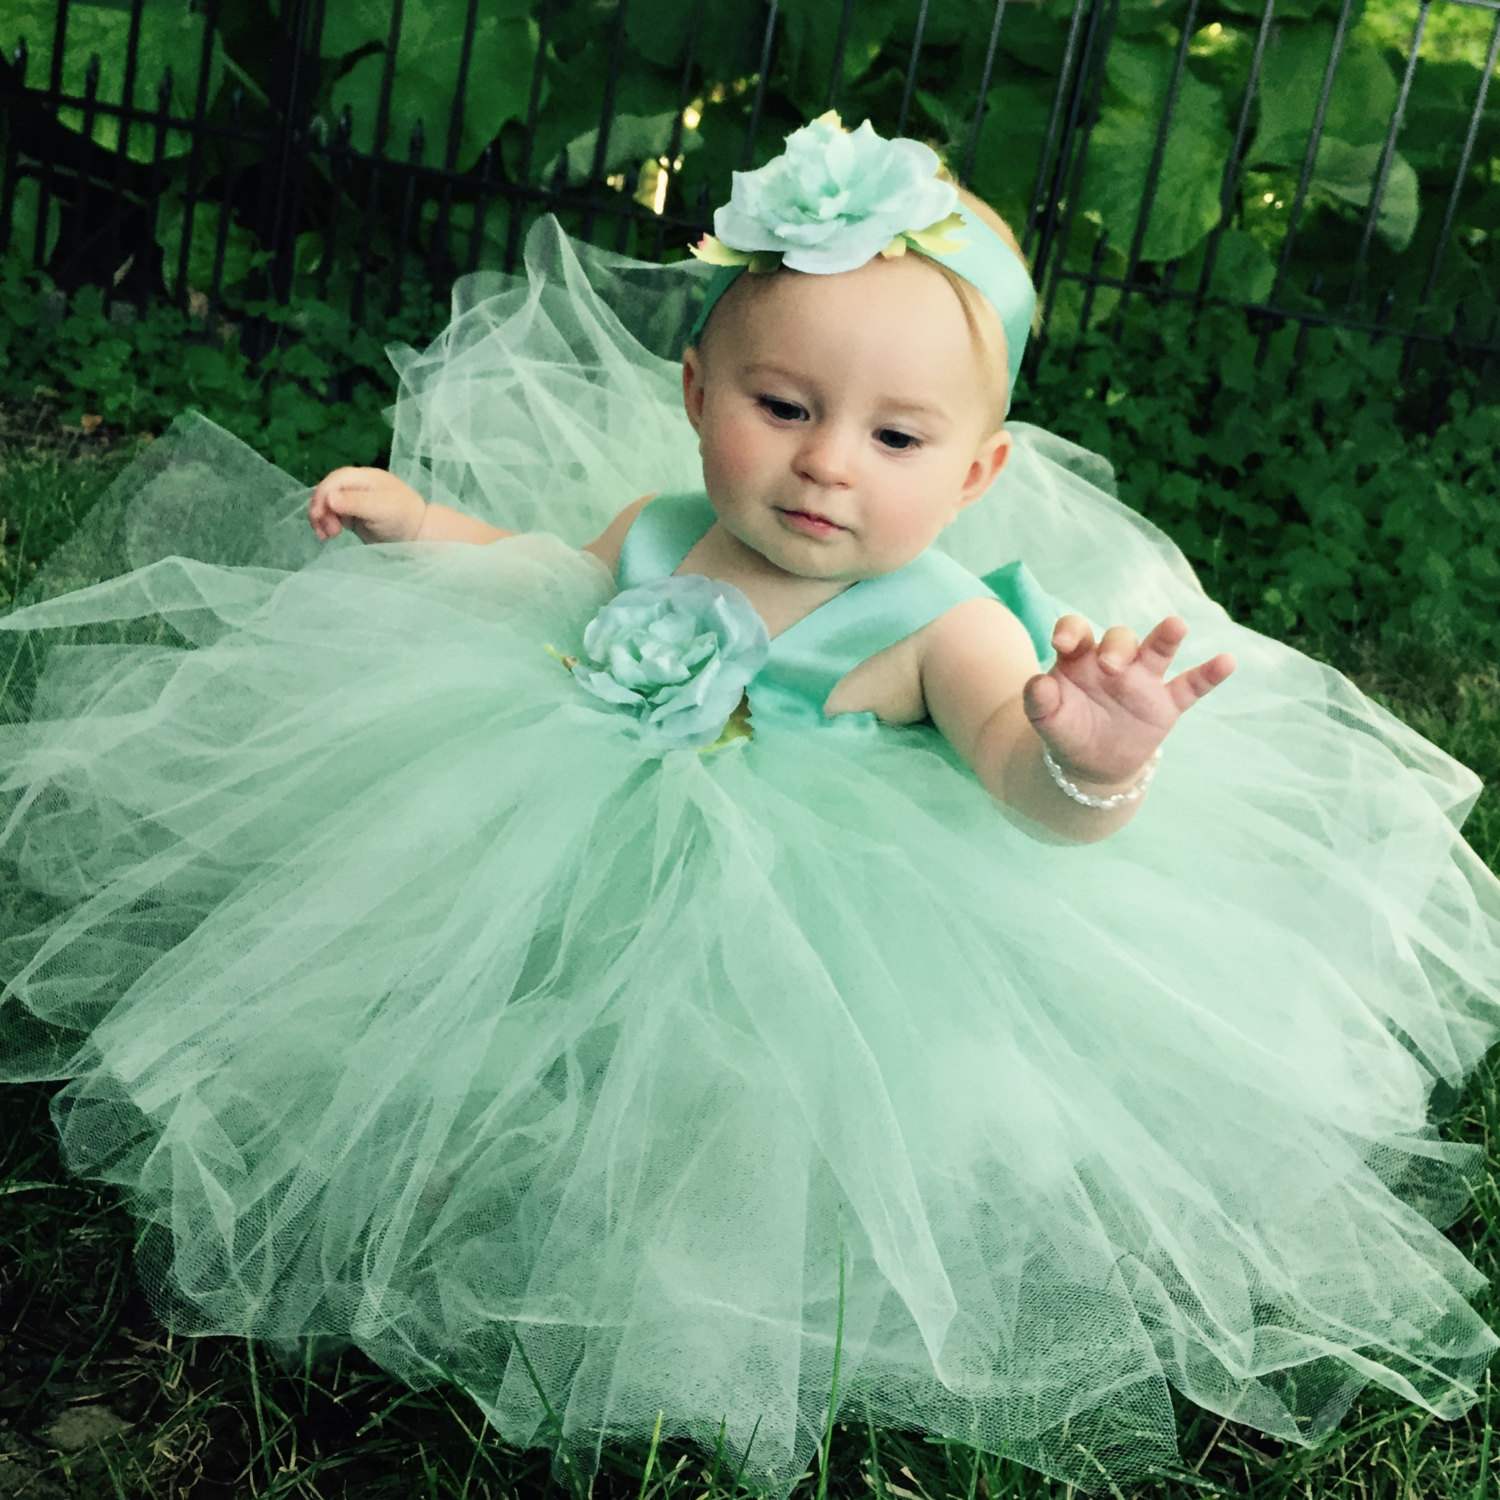 Mint Green Tulle Baby Blessing Dress Flower Girl Attire Christening Gown First Birthday Outfit Fairytale Tutus Special Event Photo Prop Set